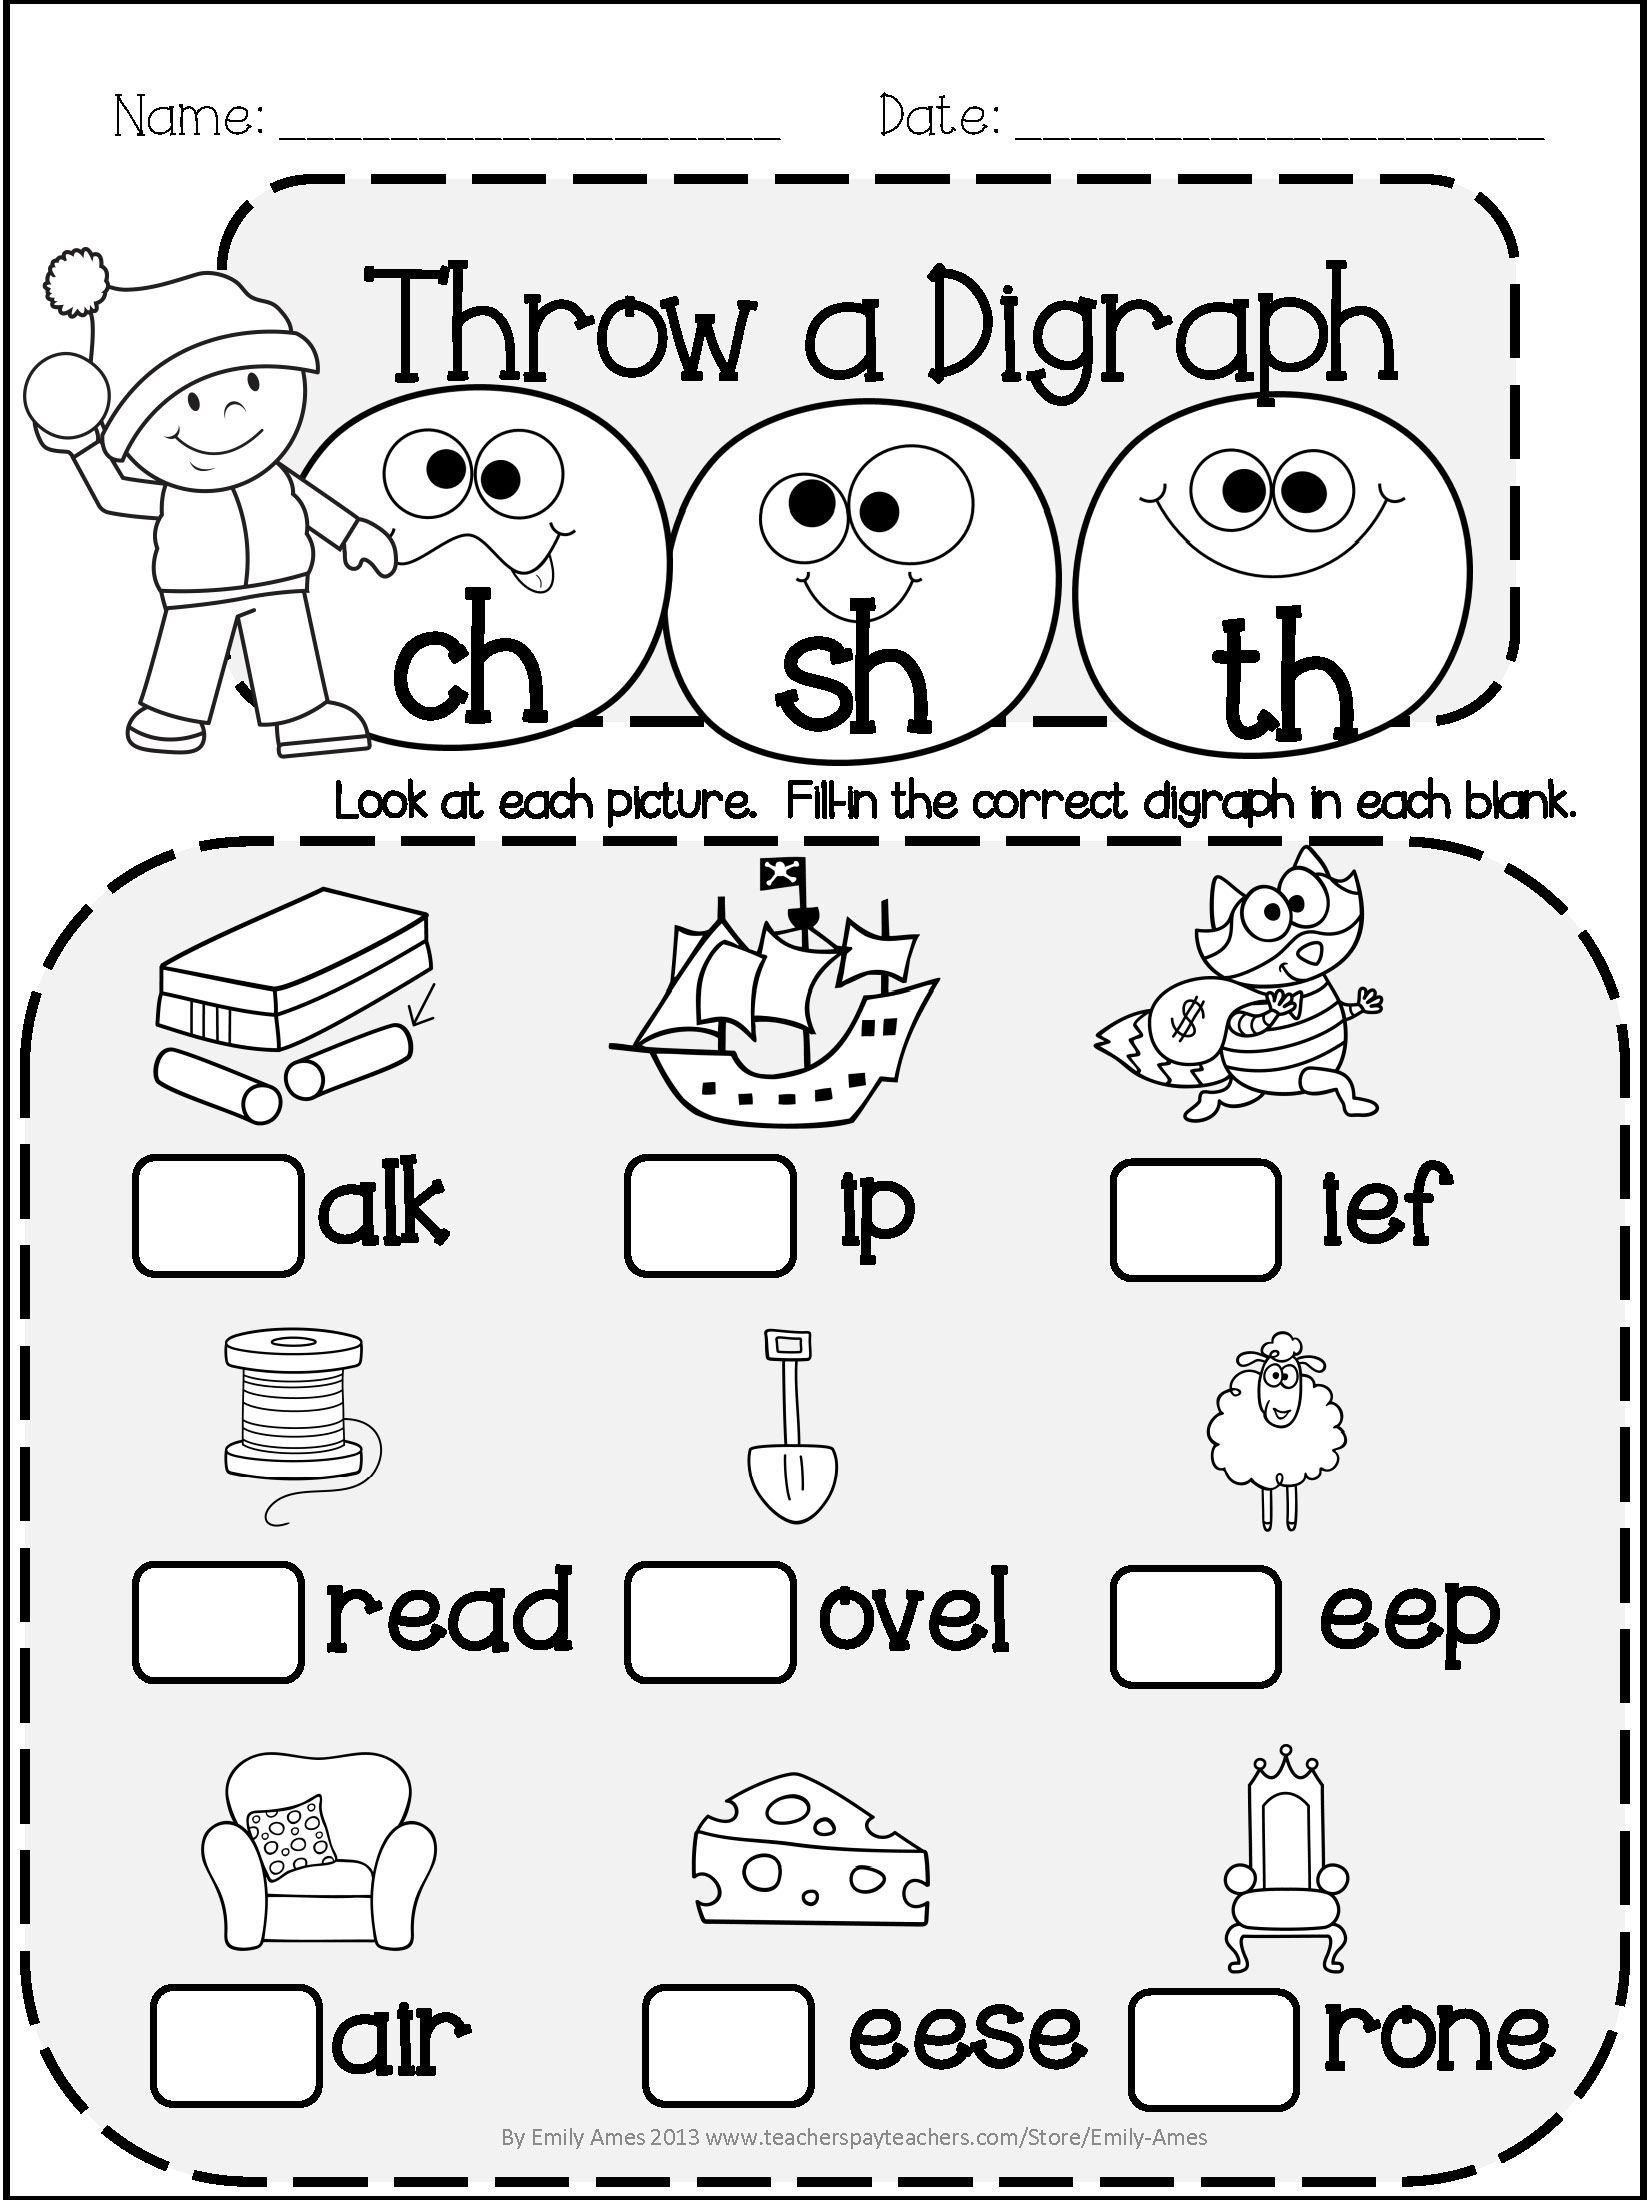 Th sound Worksheets Kindergarten Monthly Archives March 2020 Numbers 1 5 Worksheets for